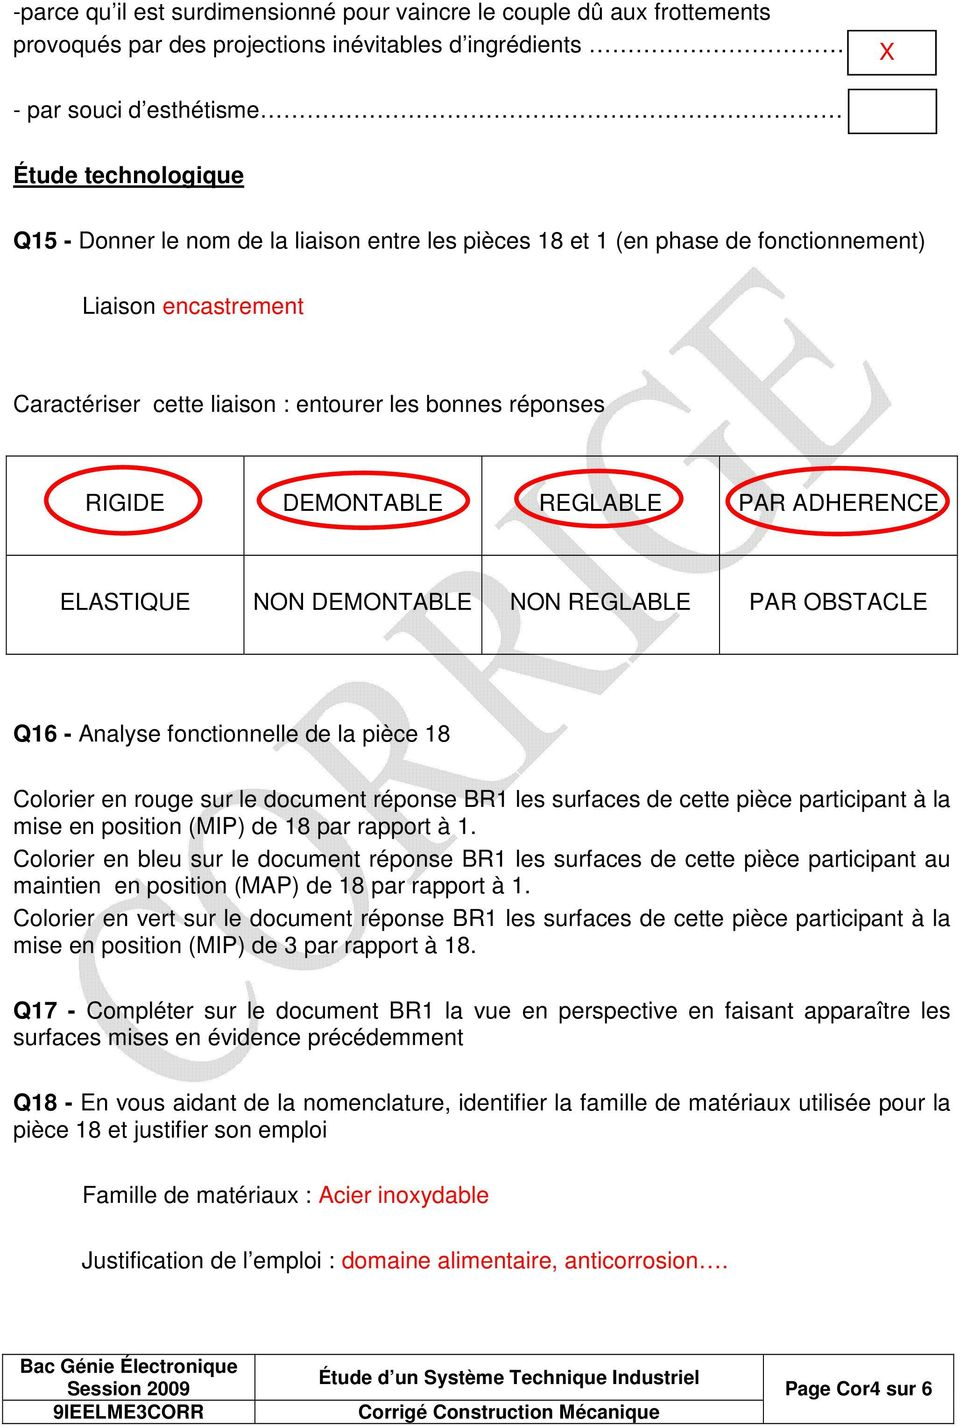 DEMONTABLE NON REGLABLE PAR OBSTACLE Q16 - Analyse fonctionnelle de la pièce 18 Colorier en rouge sur le document réponse BR1 les surfaces de cette pièce participant à la mise en position (MIP) de 18